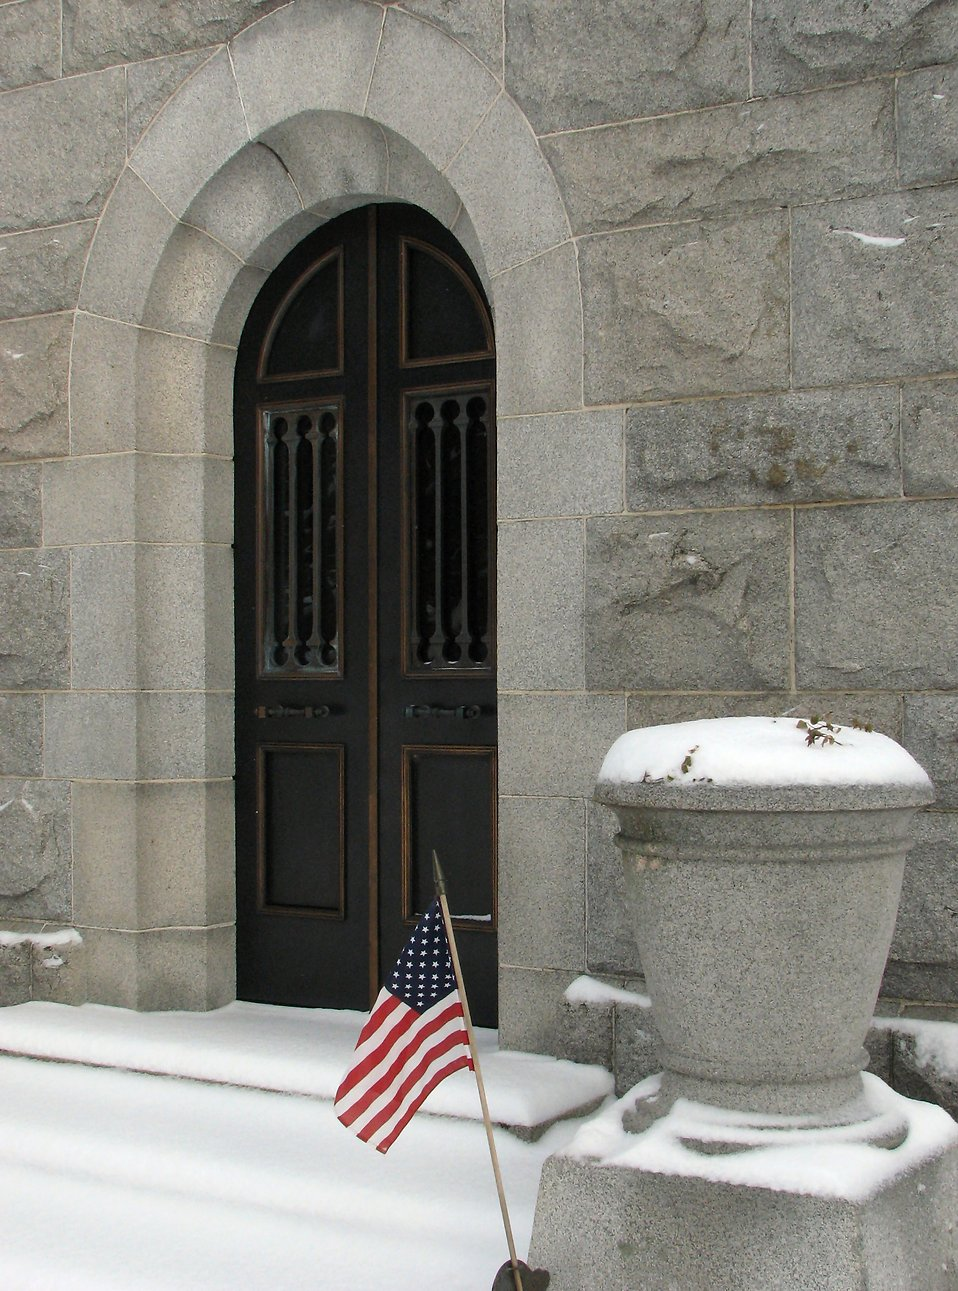 Entrance door of a small stone mausoleum with a US flag : Free Stock Photo